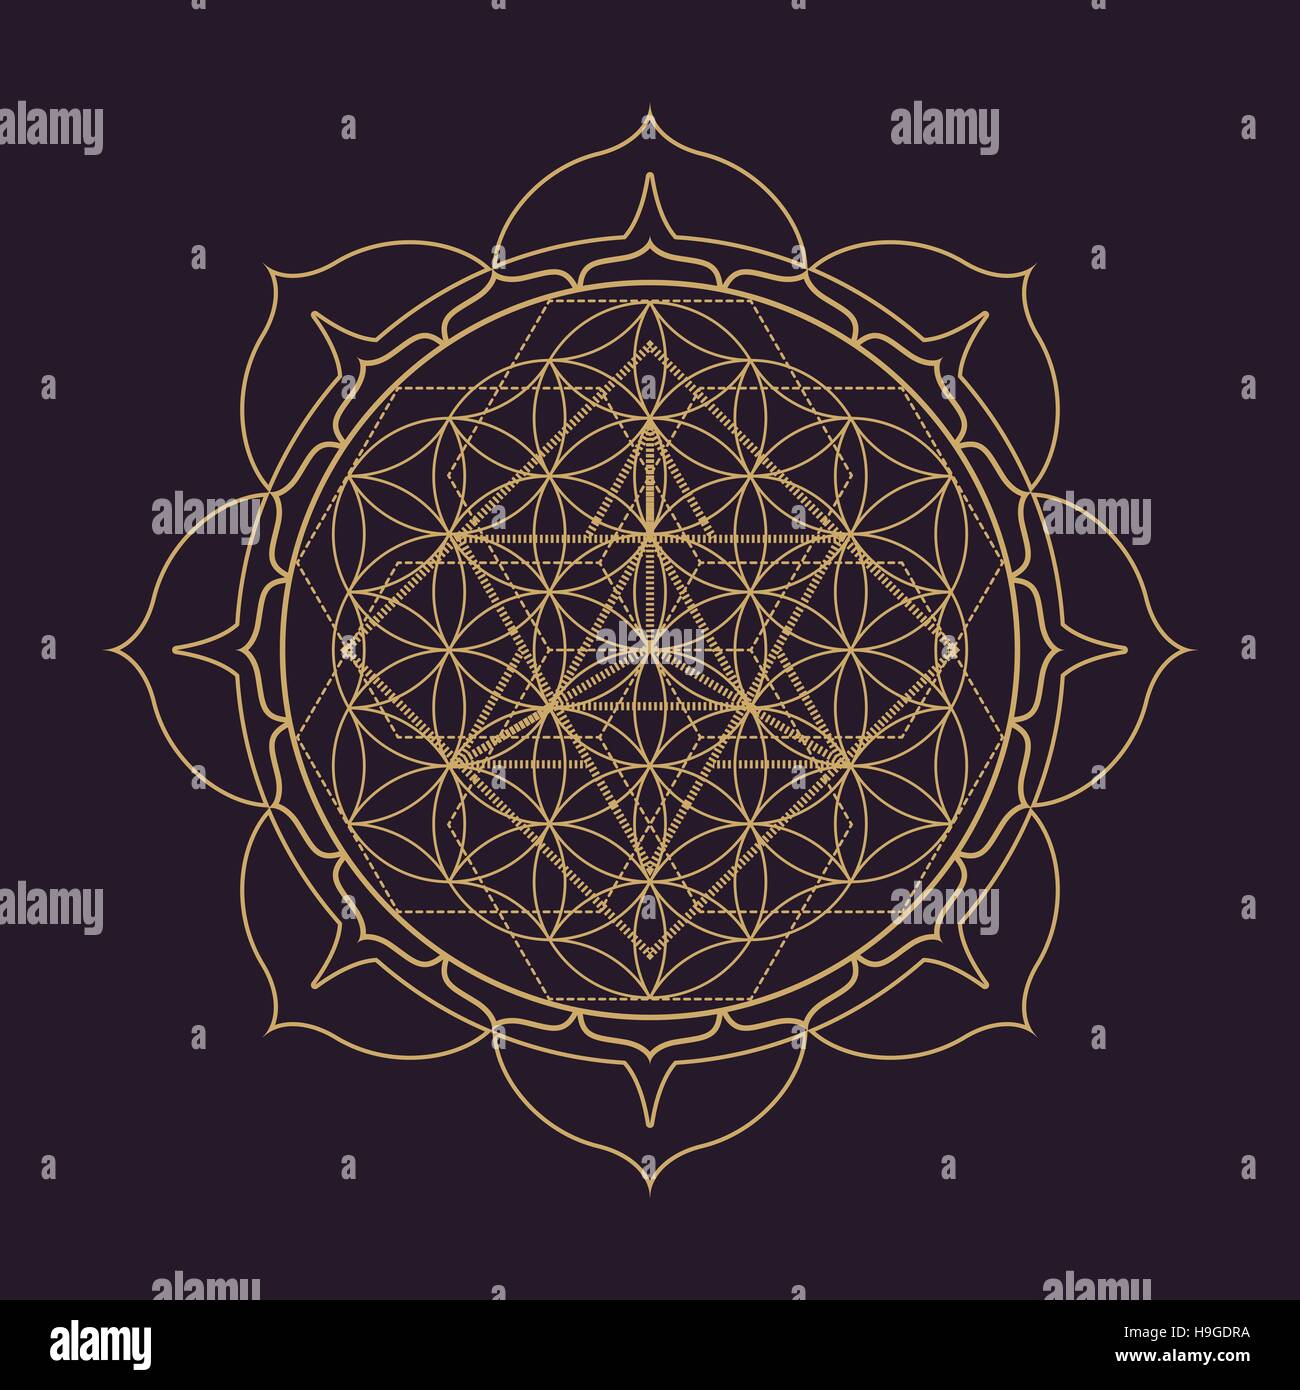 vector gold monochrome design abstract mandala sacred geometry illustration Flower of life Merkaba lotus isolated - Stock Image